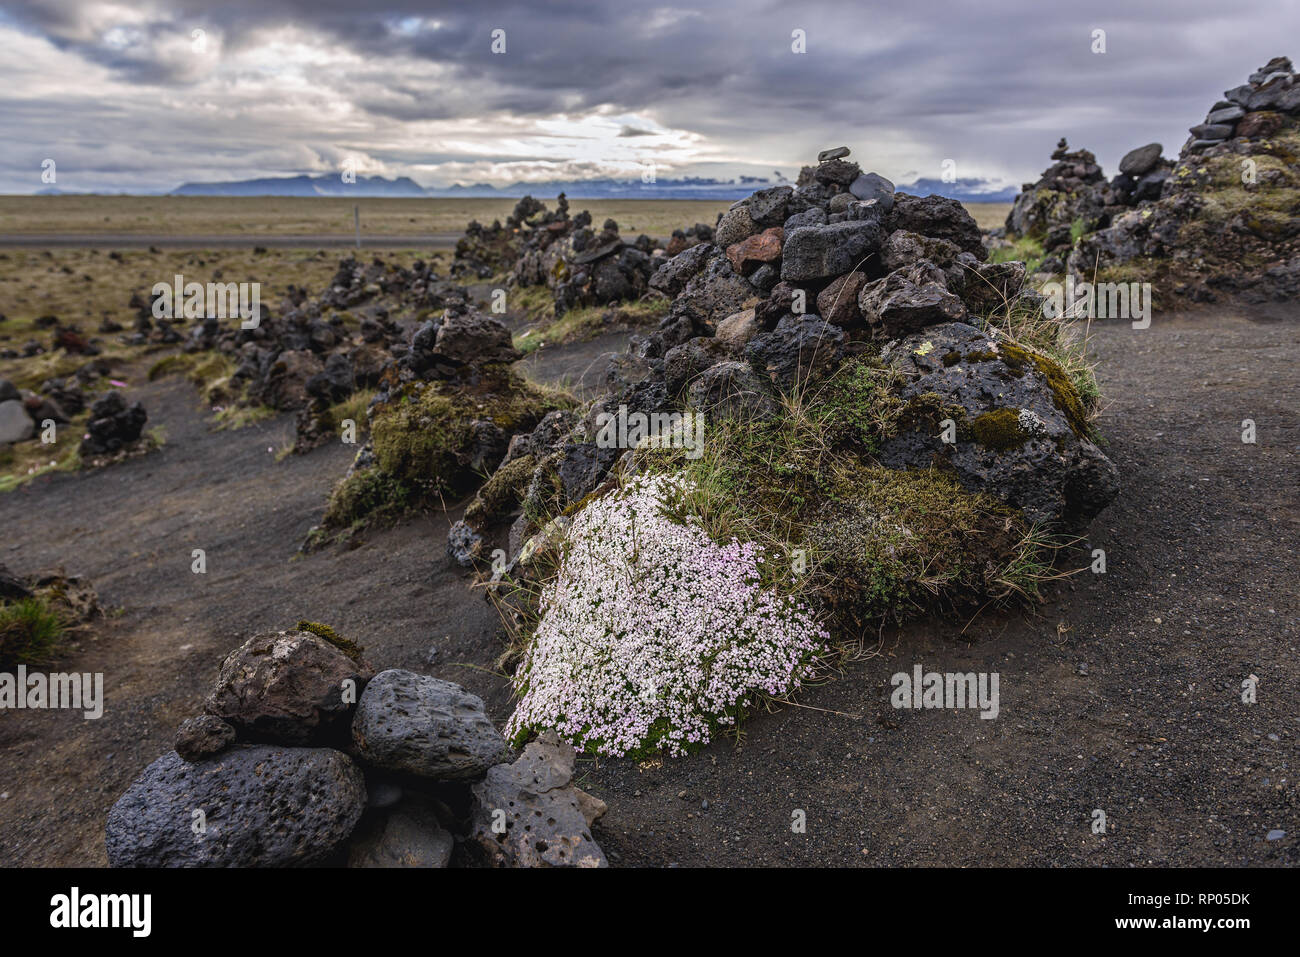 Stone cairns and Arctic Thyme on a Laufskalavarda lava ridge in Iceland - Stock Image